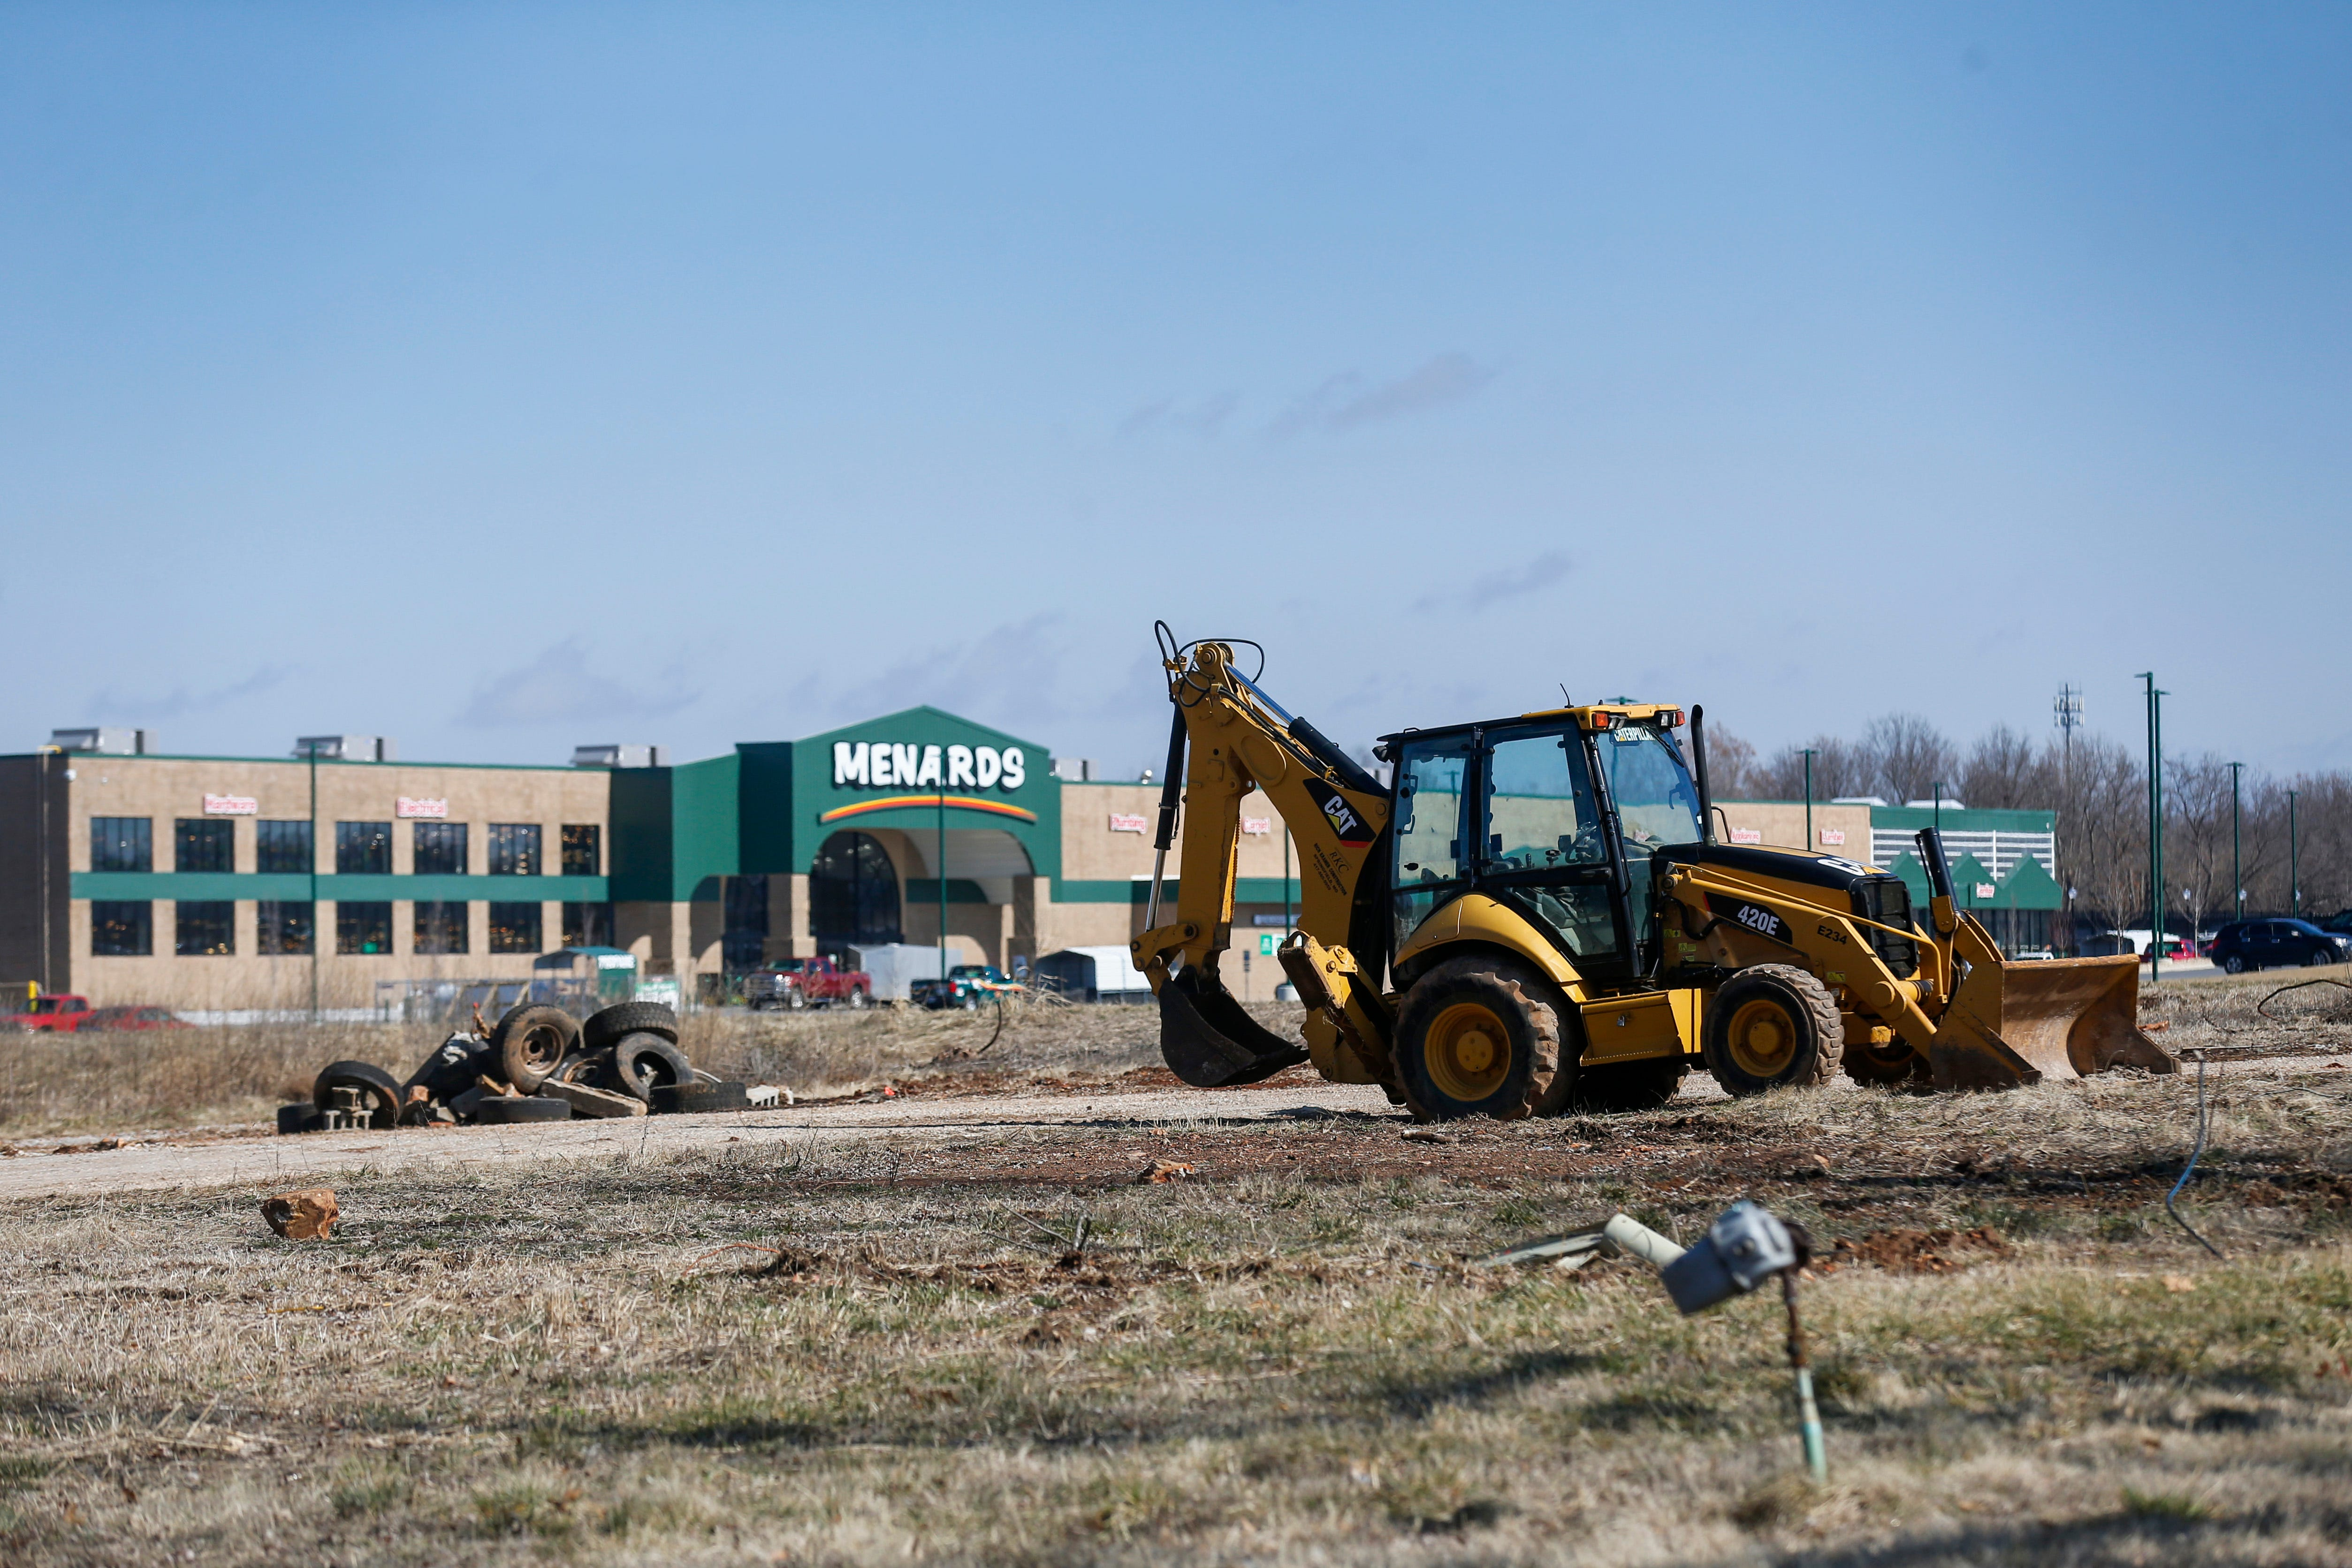 A 193-unit apartment complex and a building with retail space between a neighborhood and the Menards is being proposed on West University Street.